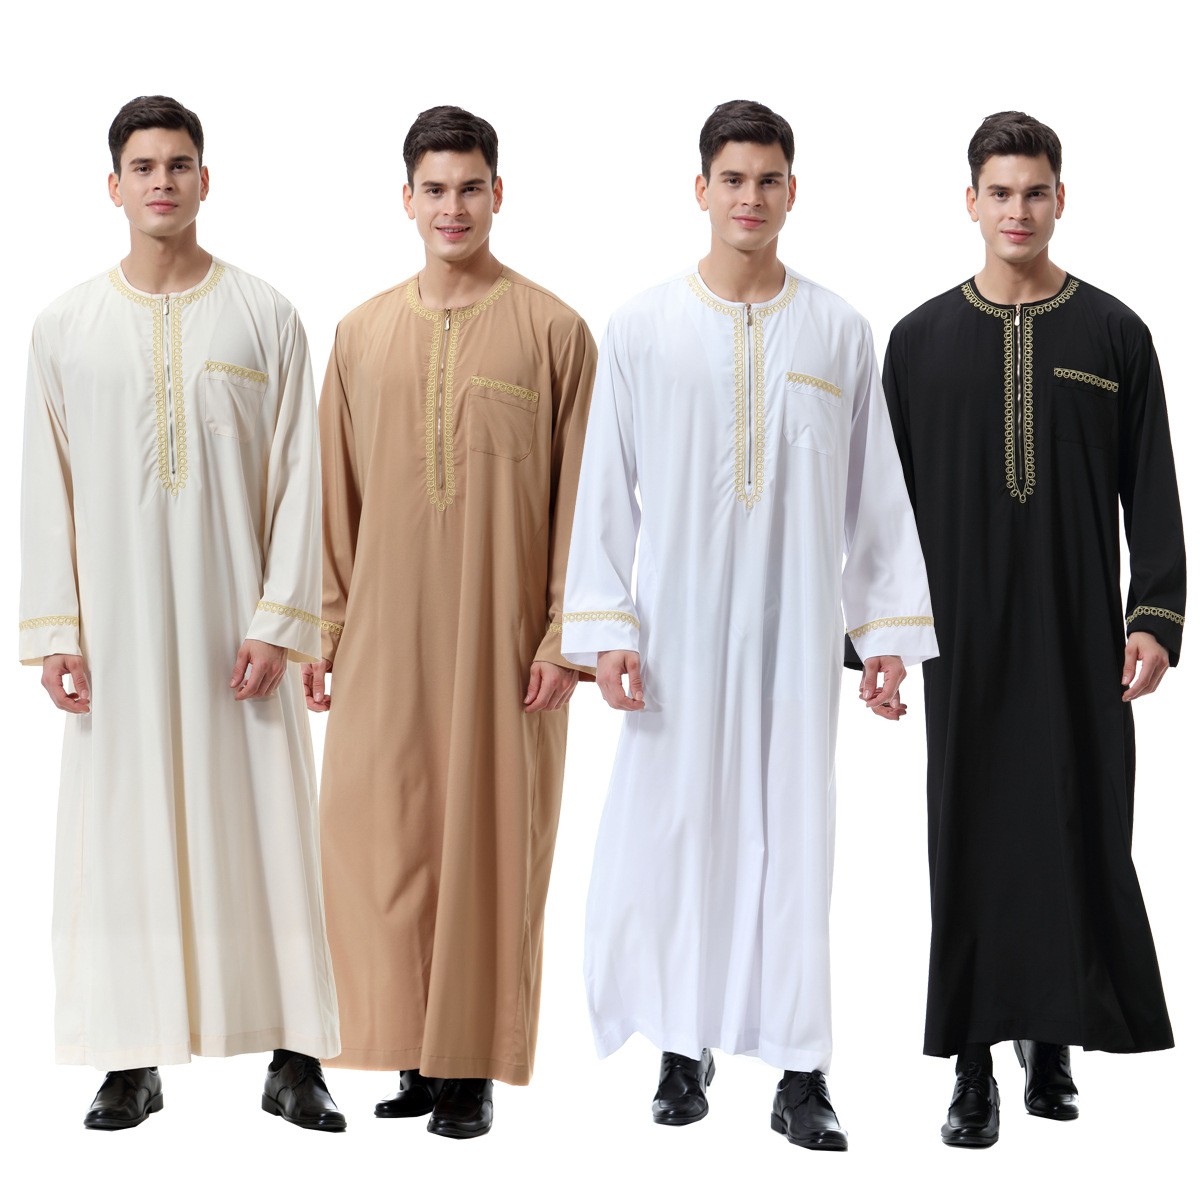 Fashion Men Robes Muslim Clothing Long Sleeve  Arab Dubai Indian Middle East Islamic Man Jubba Thobe Men Jubah Islamic Clothing